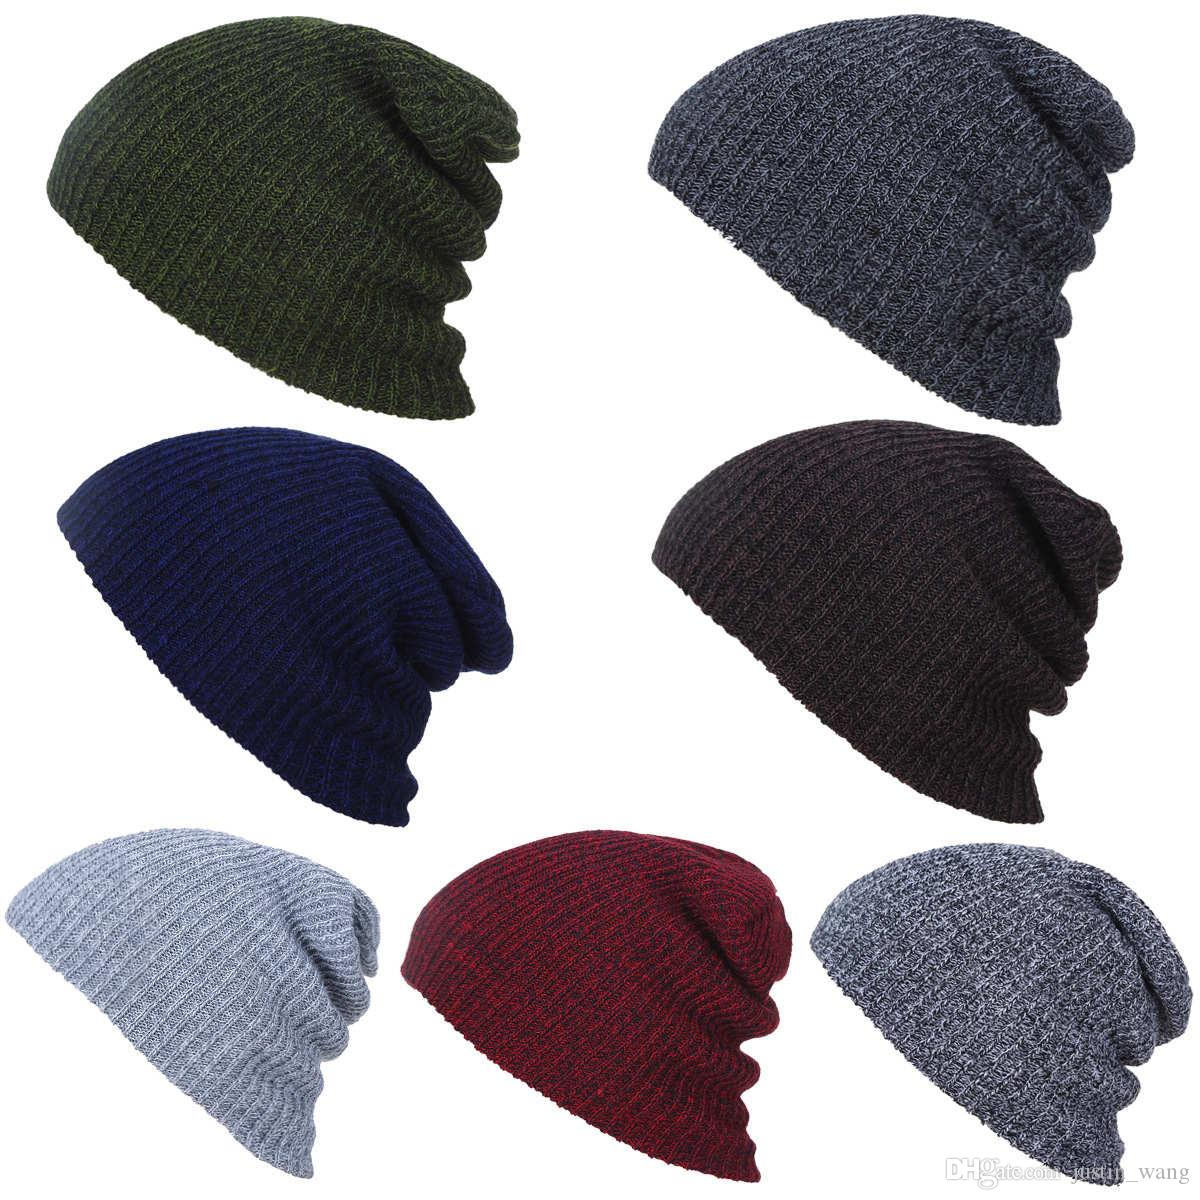 Skull caps winter Knitted hats warm Solid color beanie outdoor wool cap for women wrinkle knitting hats